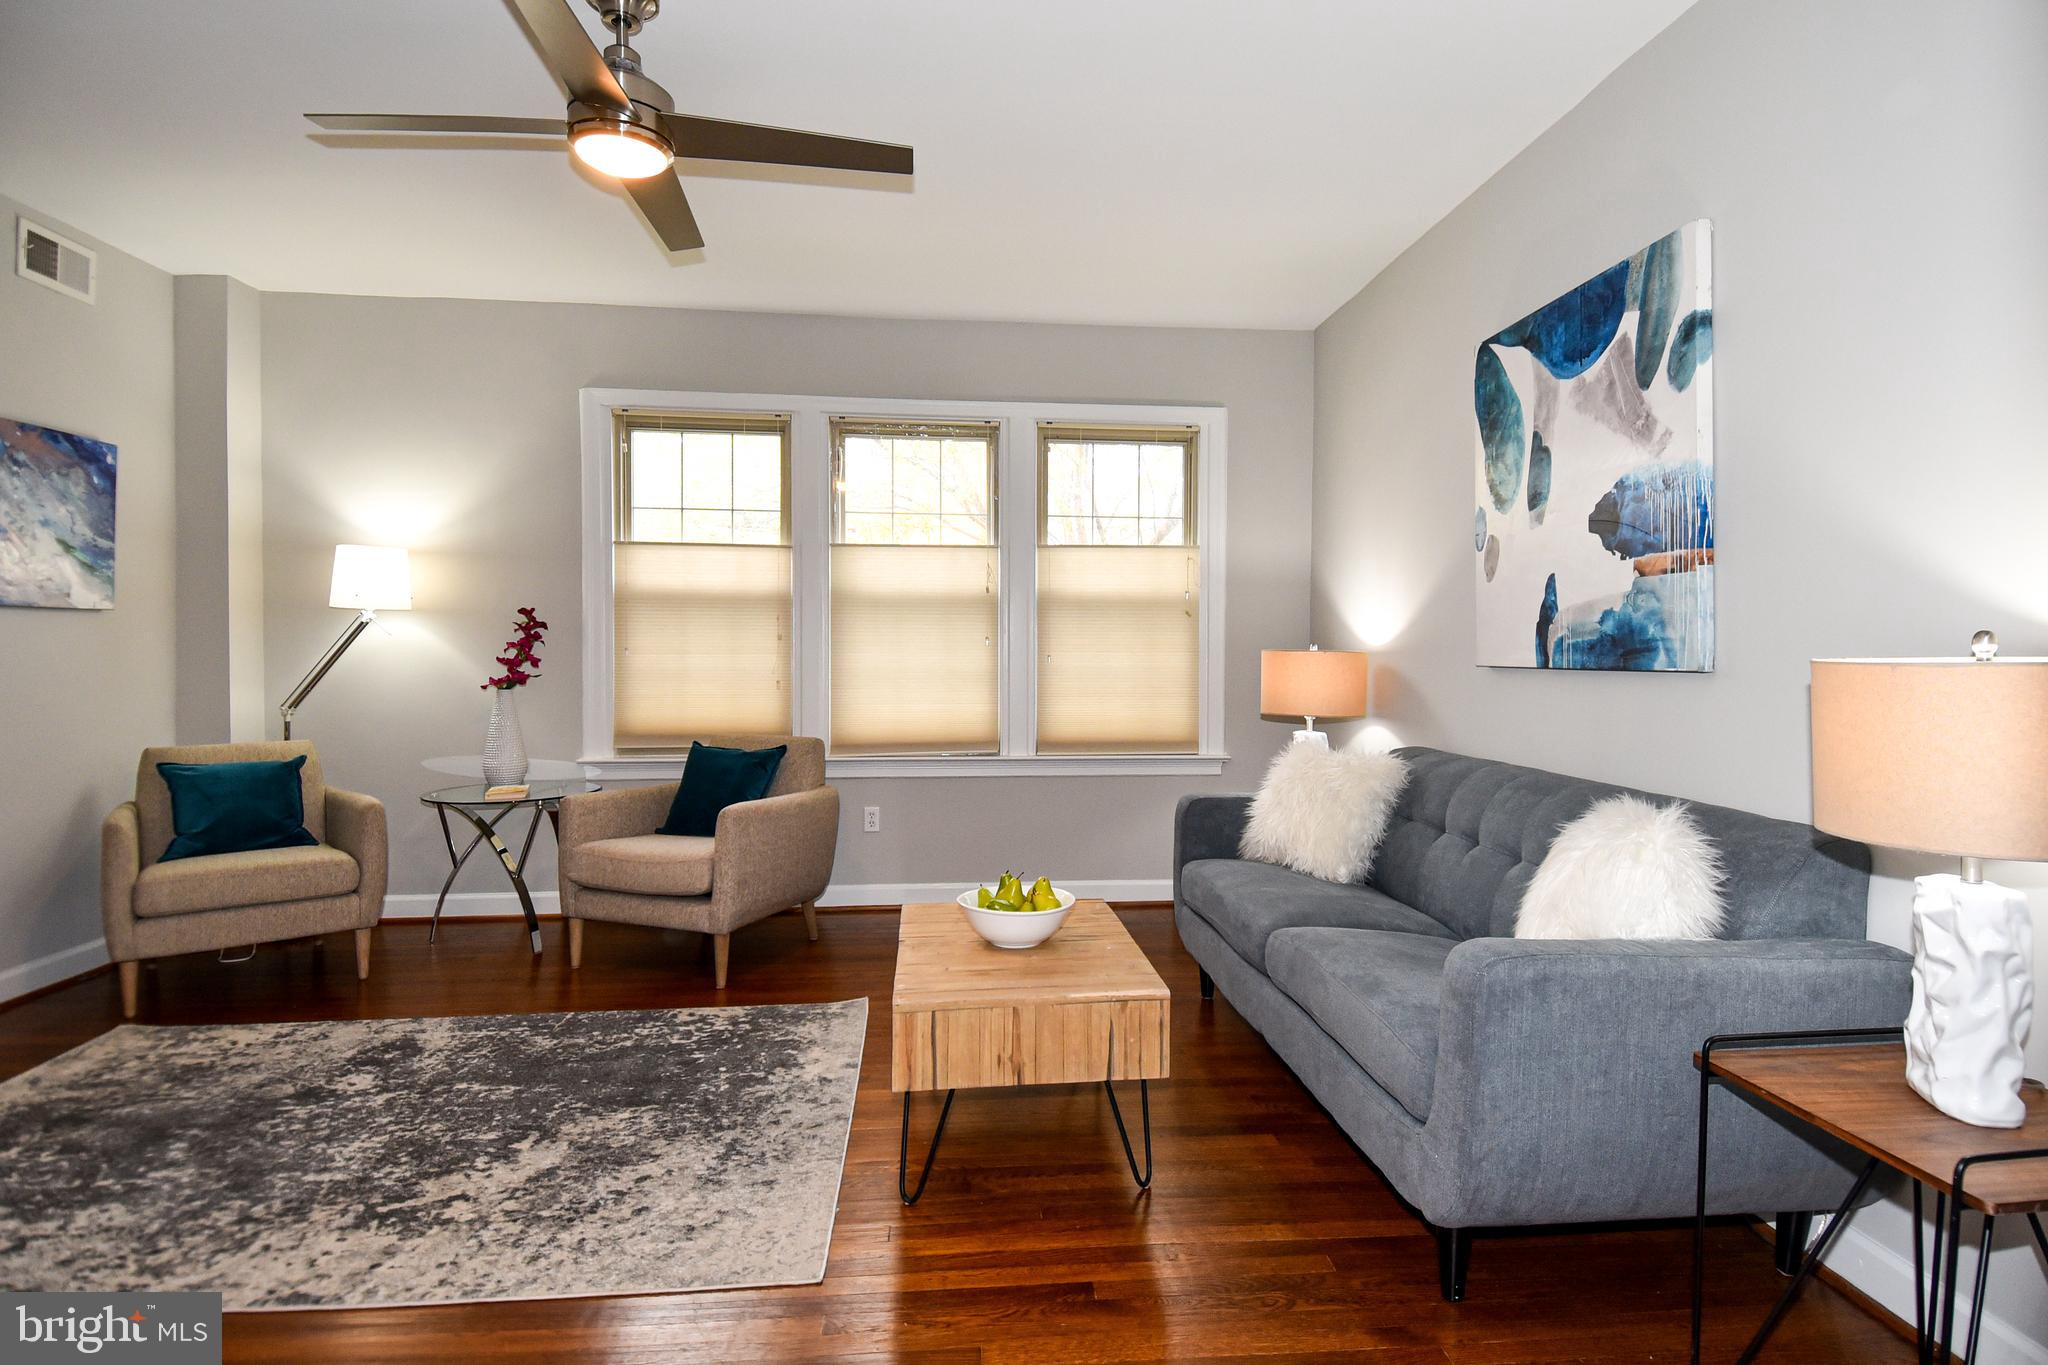 STYLISH + SPACIOUS! MOVE IN READY 2BR/1.5BA CONDO in renovated brick building with 1 secure, reserve